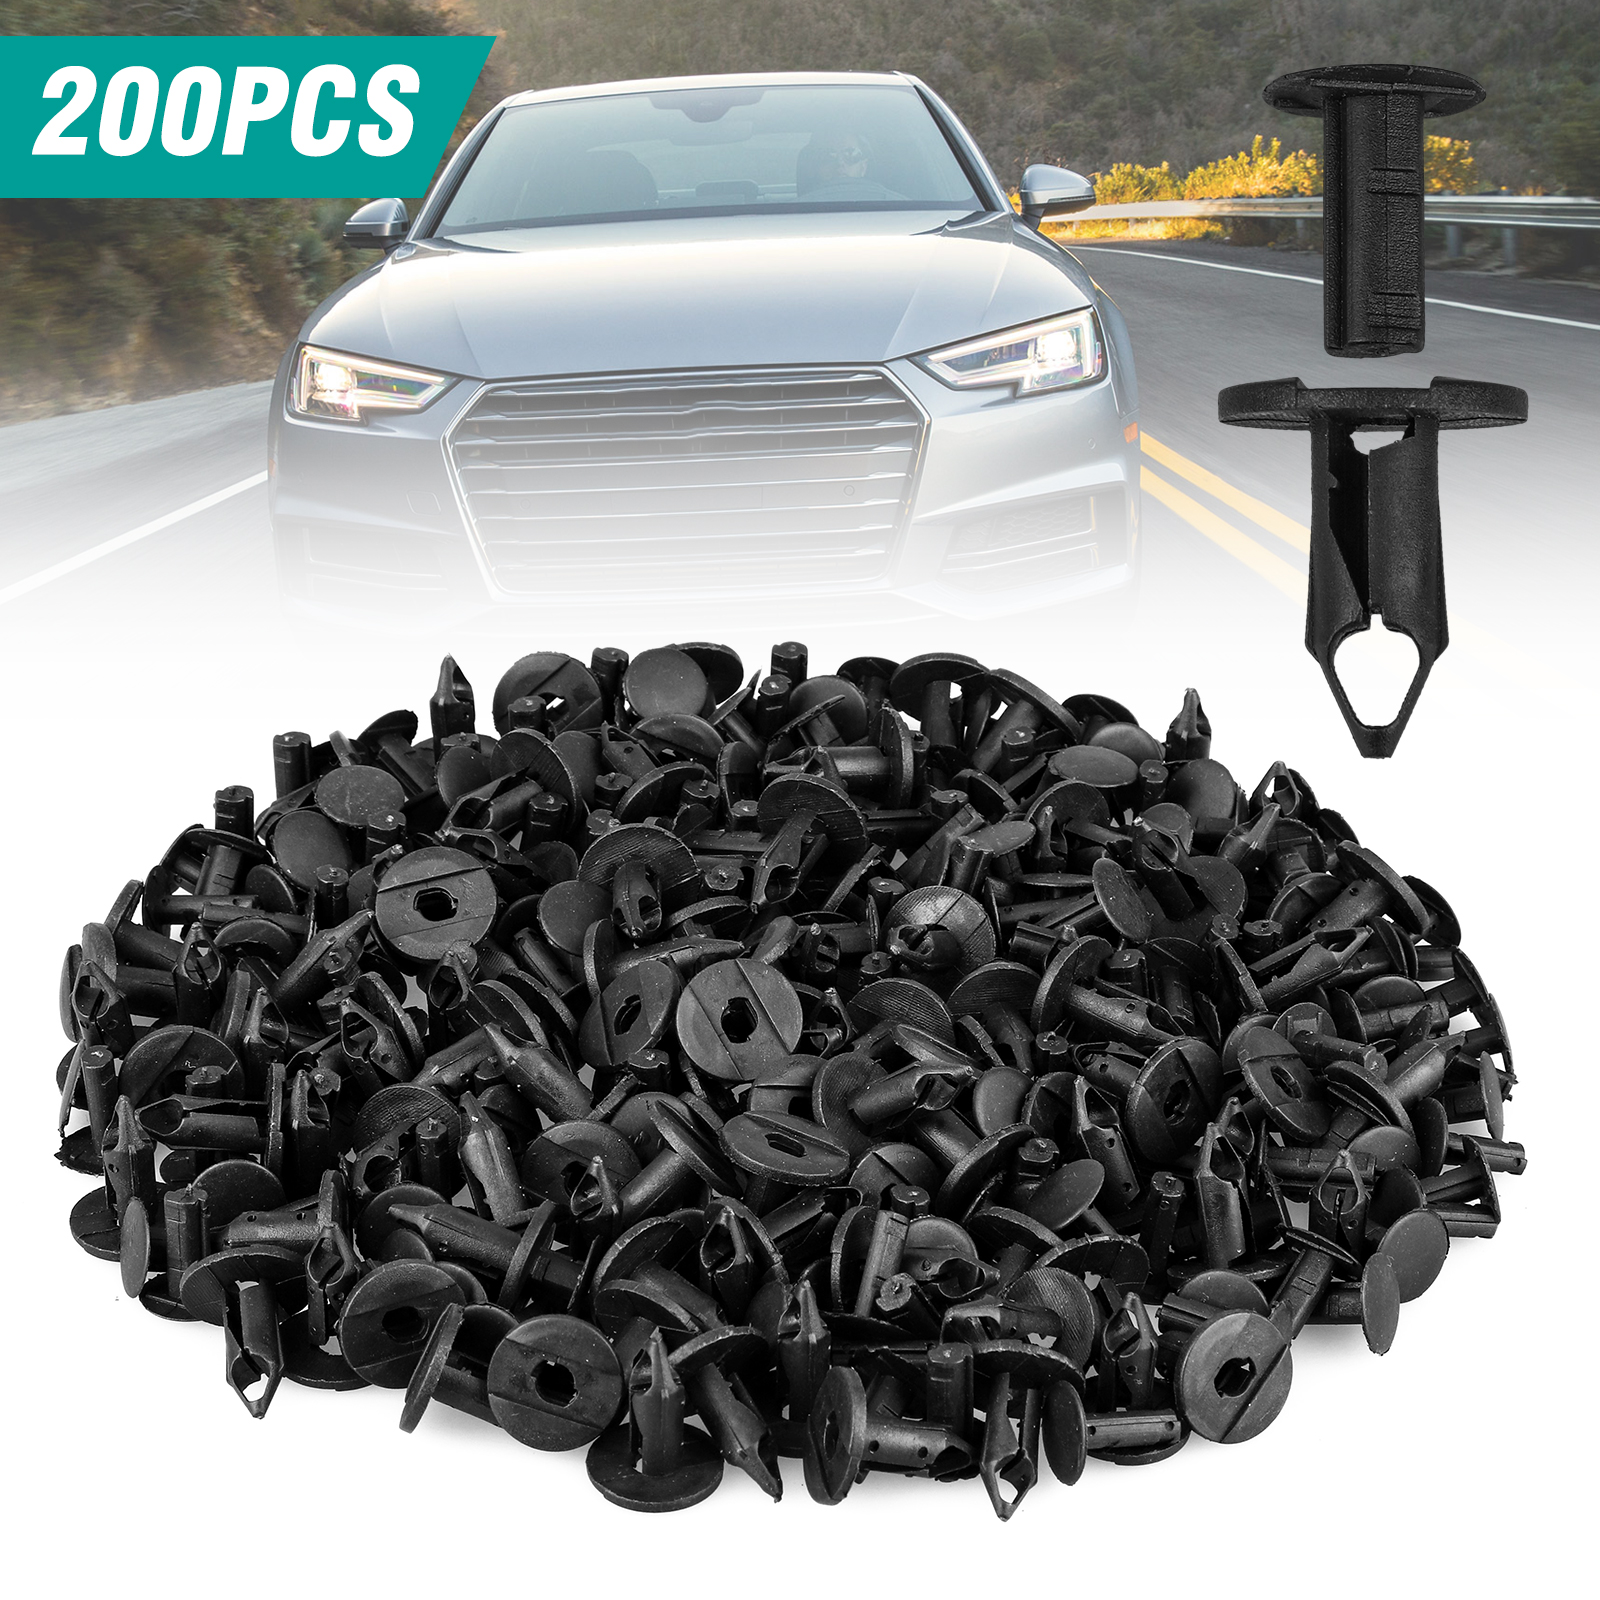 EEEkit Nylon Bumper Fastener Rivet Clips Automotive Furniture Assembly Expansion Screws Kit Auto Body Clips 8mm - 200PCS